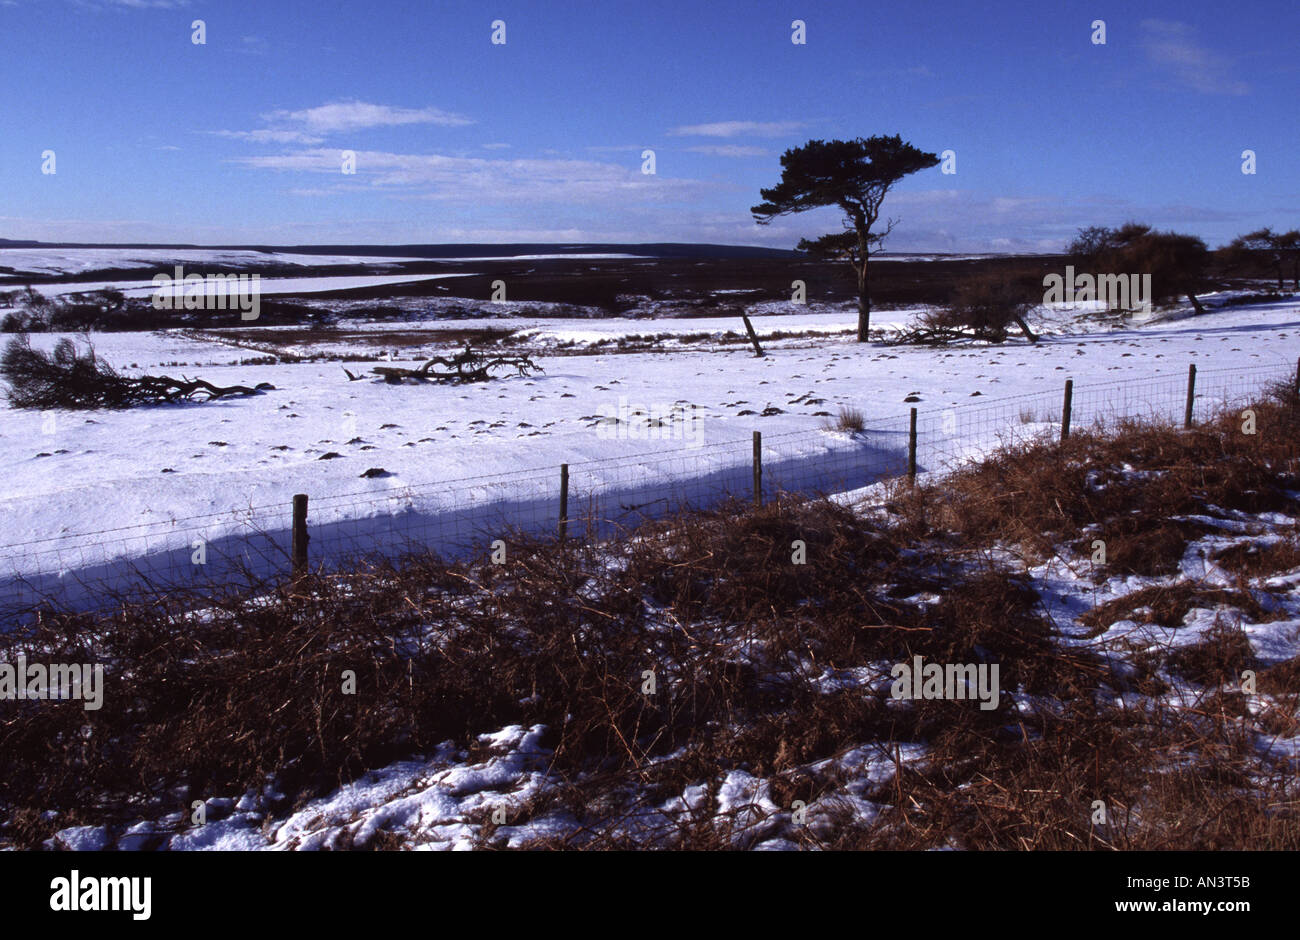 Moors in the snow - Stock Image